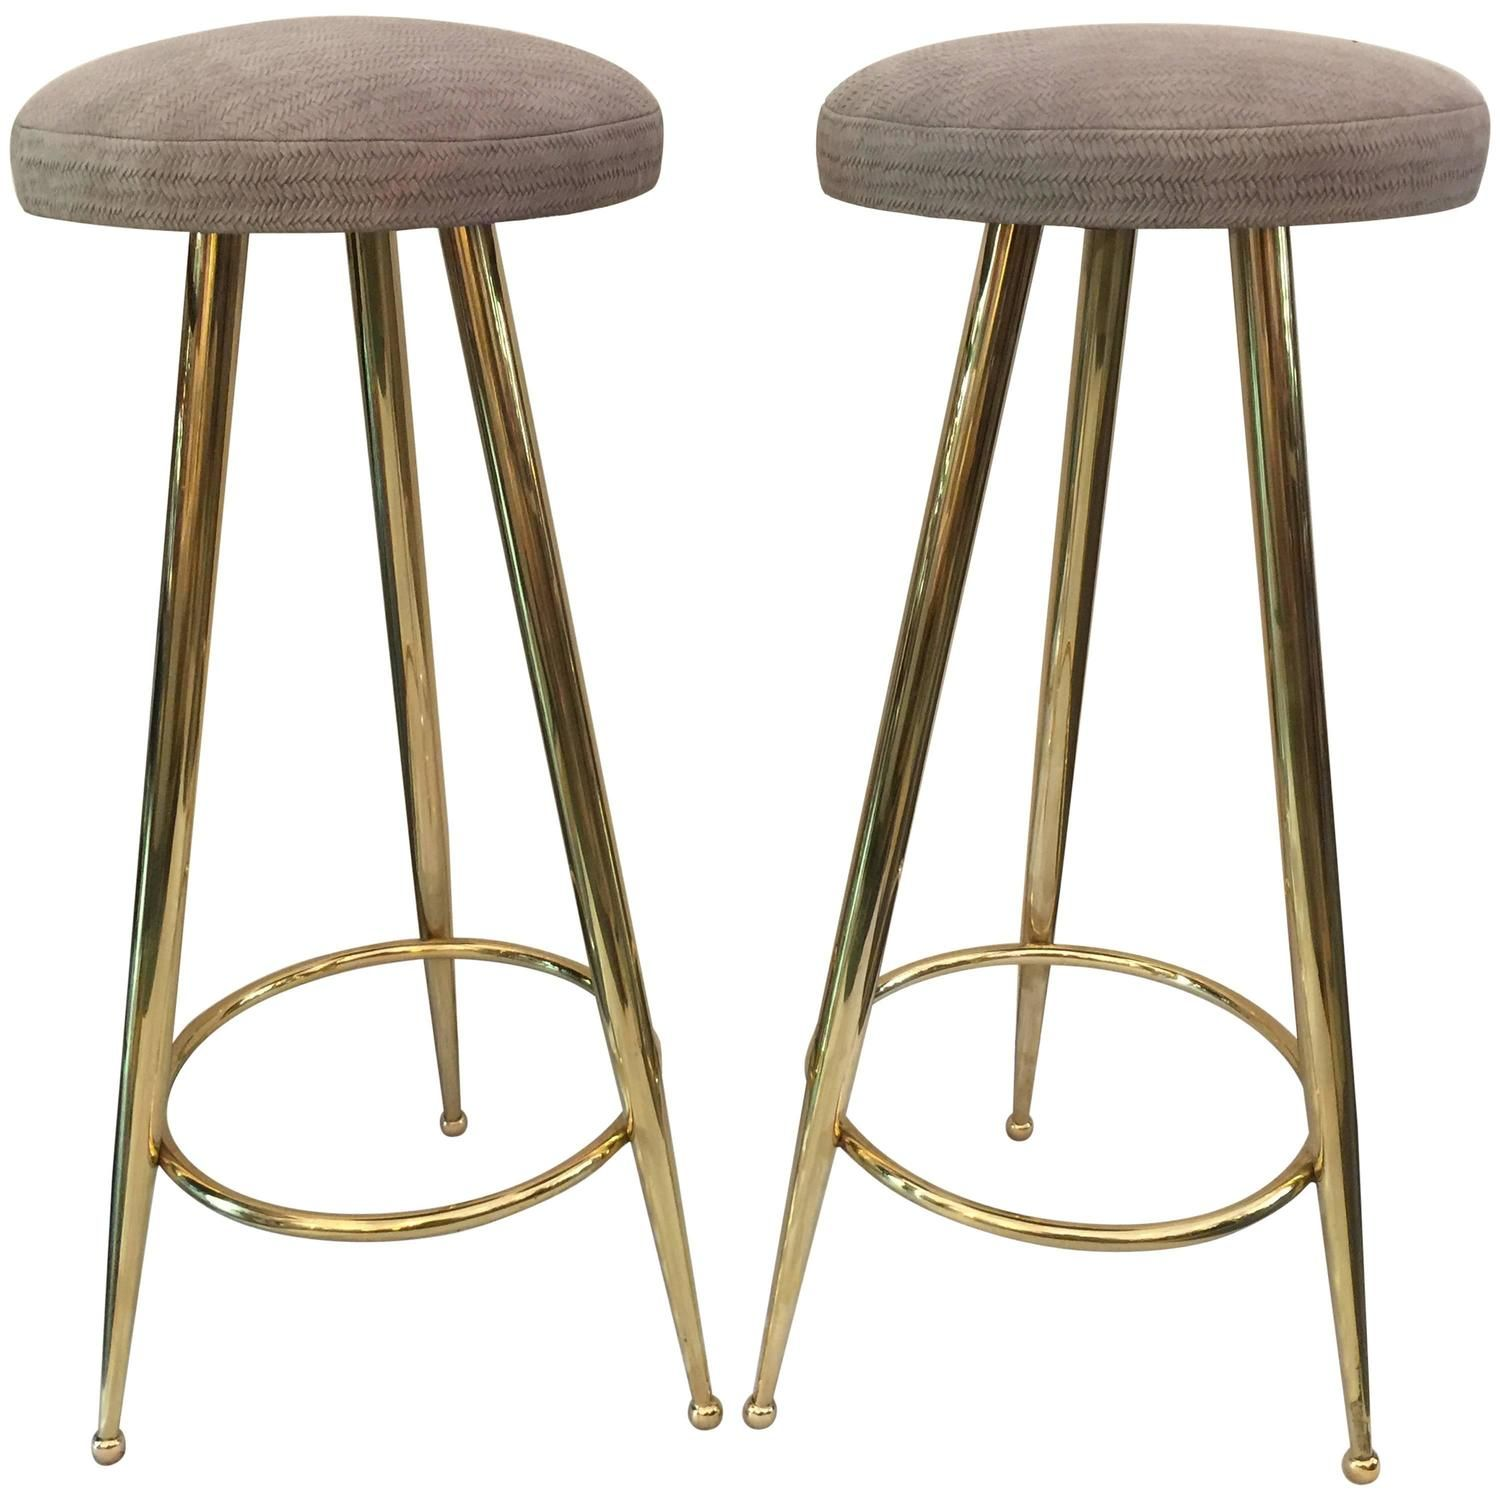 Pair Of Vintage Italian Brass Bar Stools Brass Bar Stools Bar